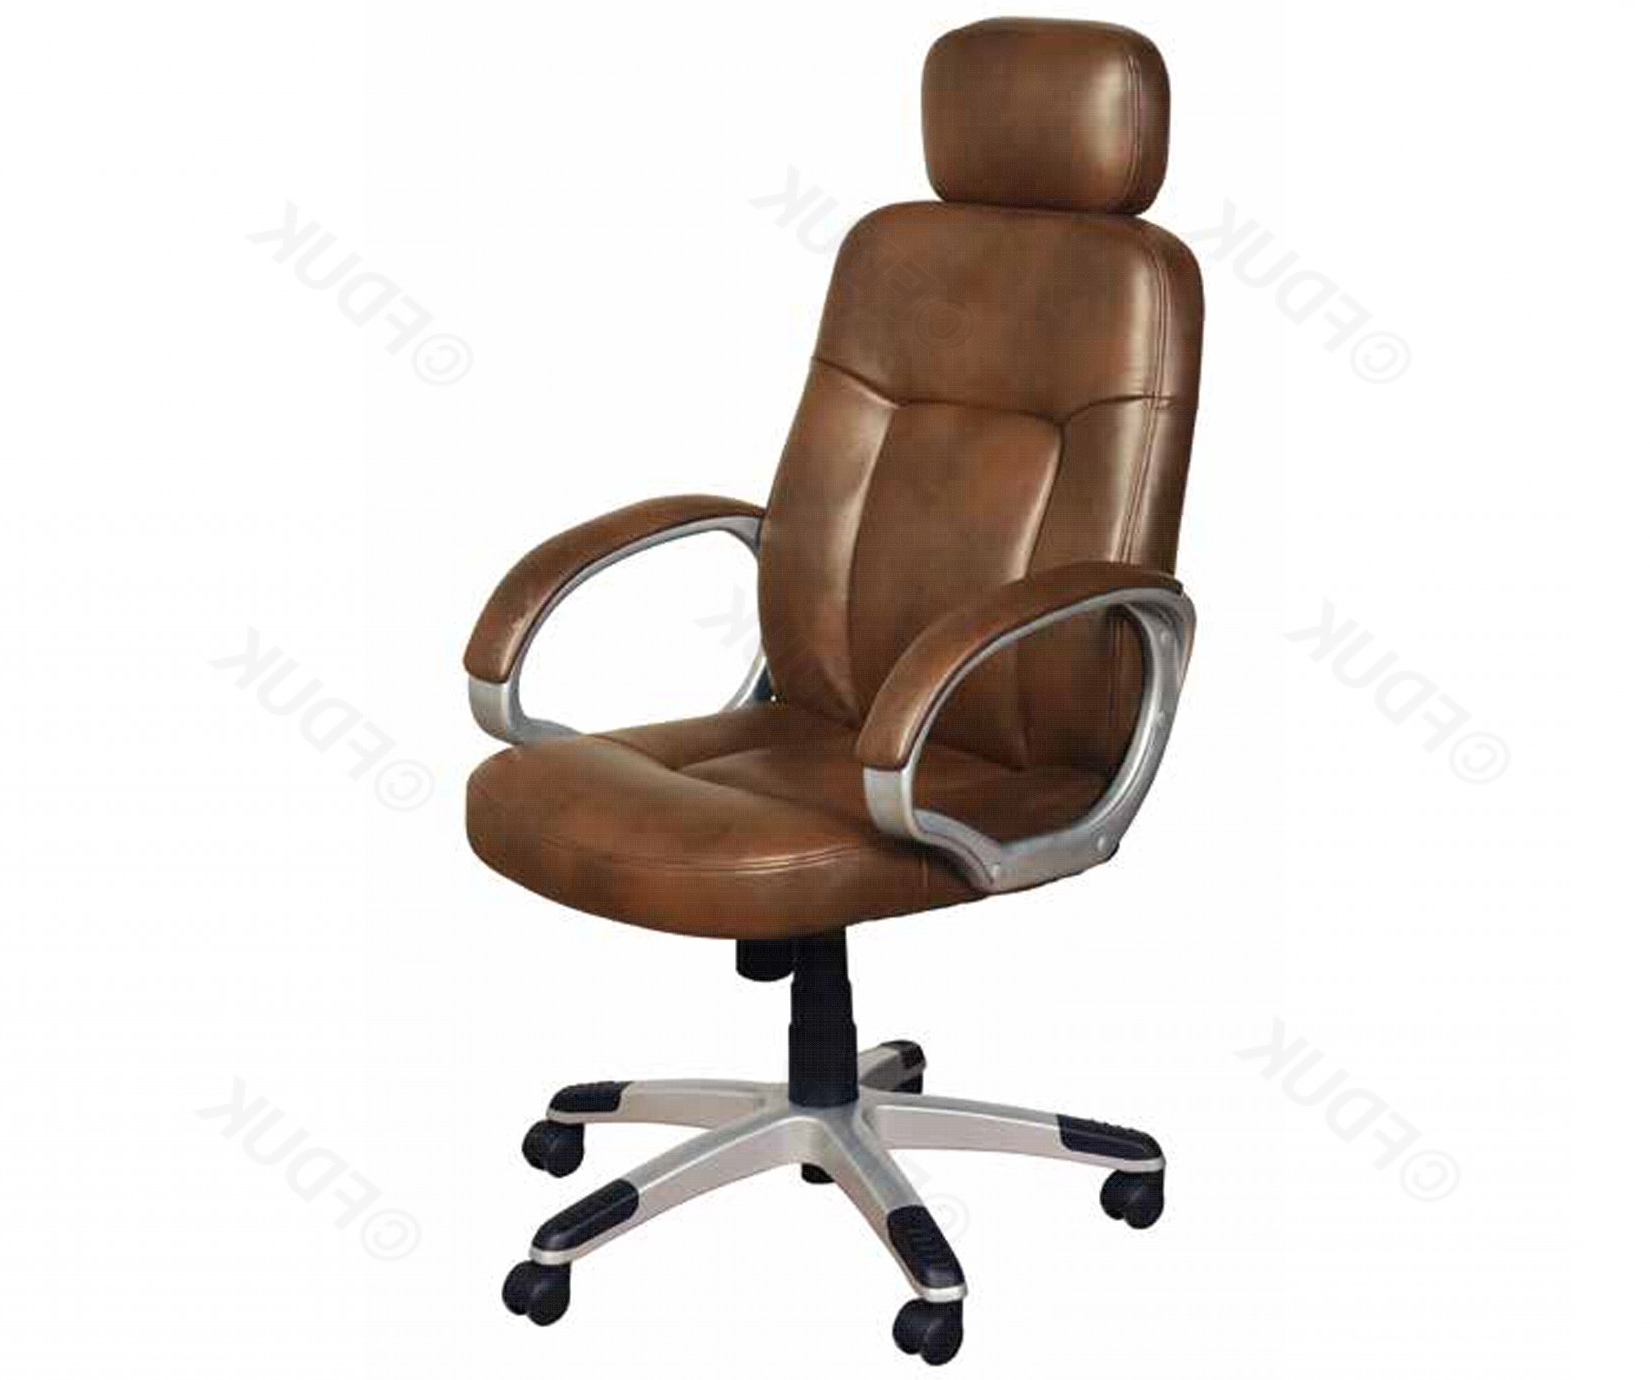 Light Beige Microfiber Executive Office Chairs Regarding Well Known Lovely Tan Office Chair (14 Photos) (View 11 of 20)